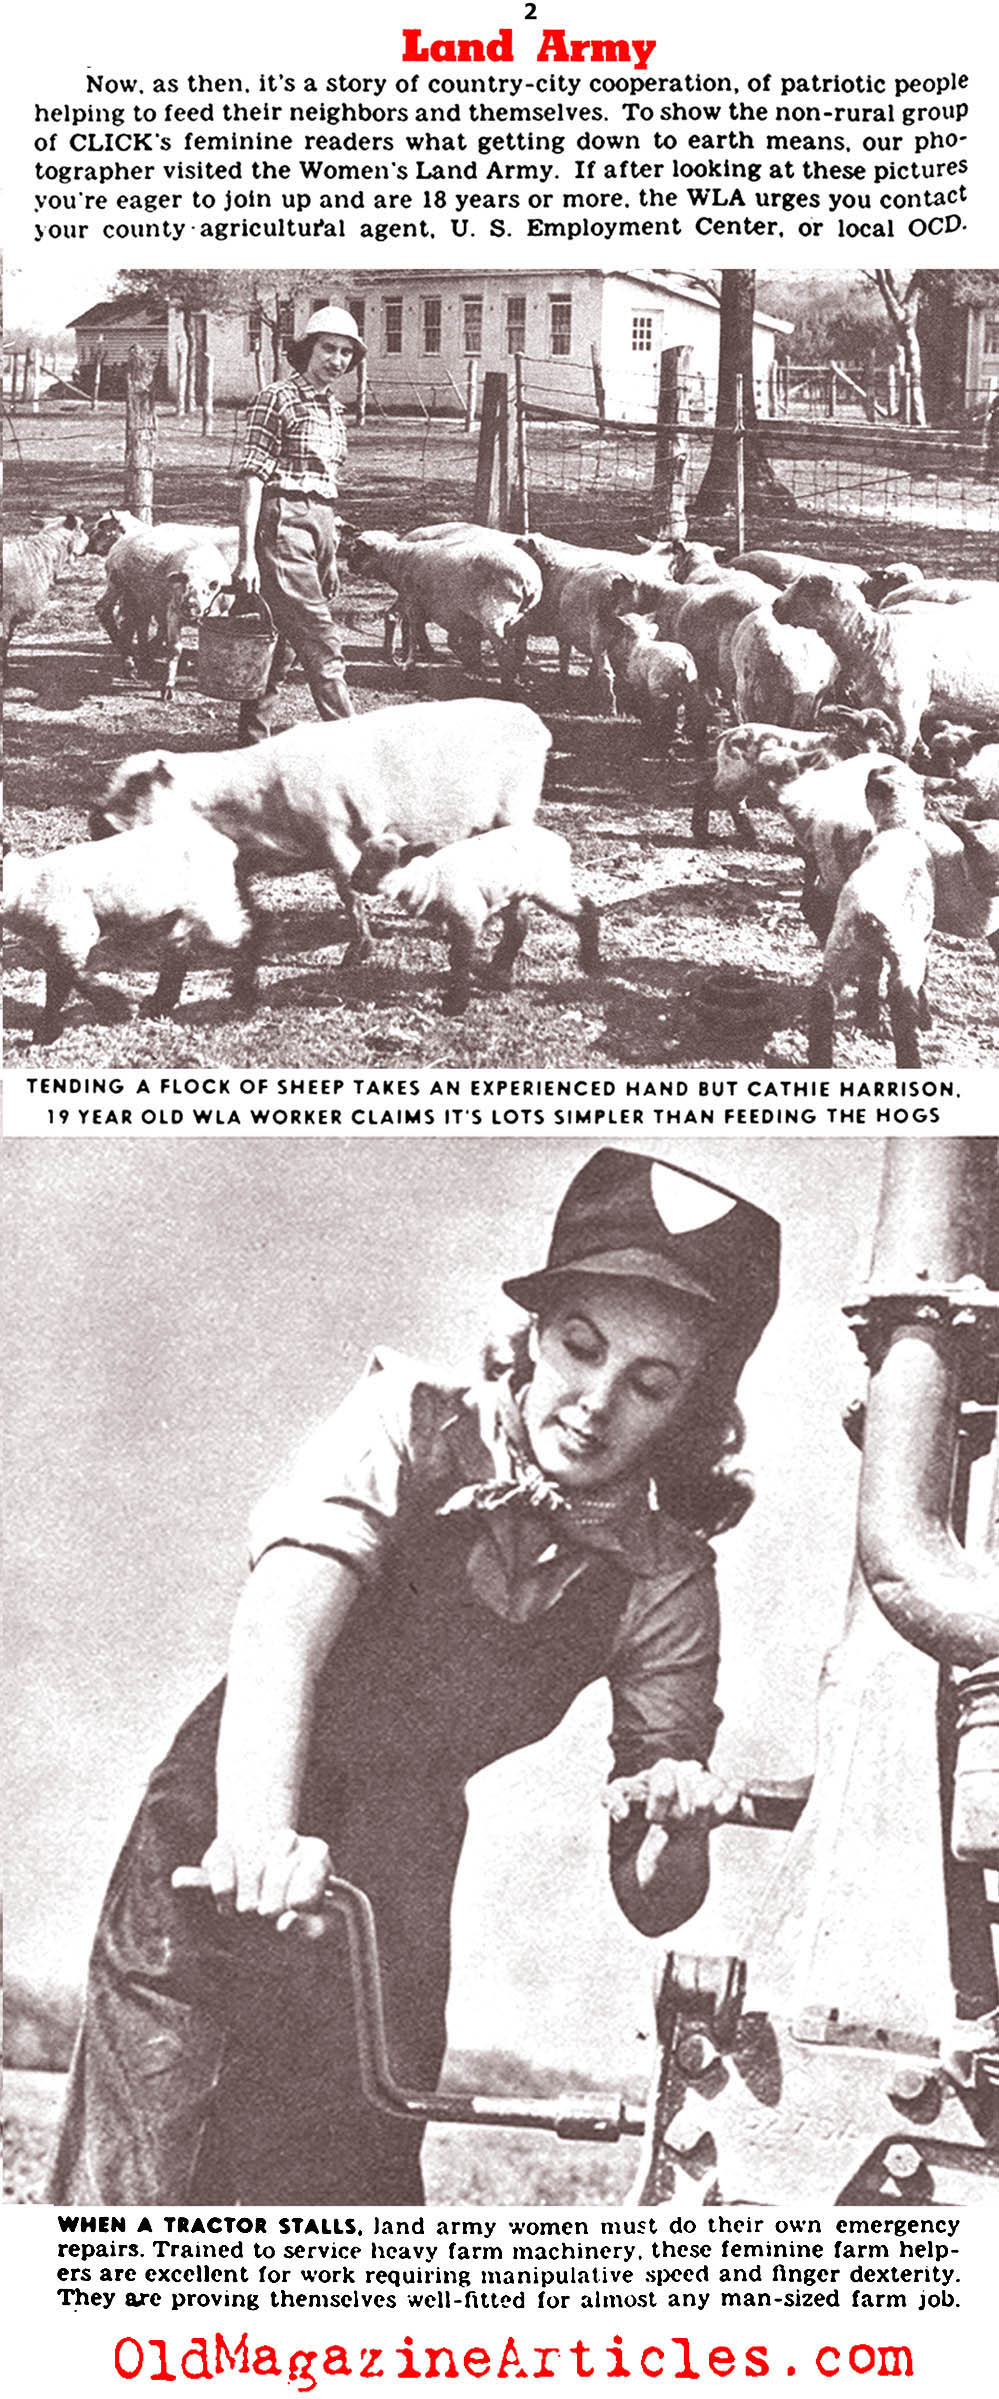 The Women's Land Army in World War Two (Click Magazine, 1943)